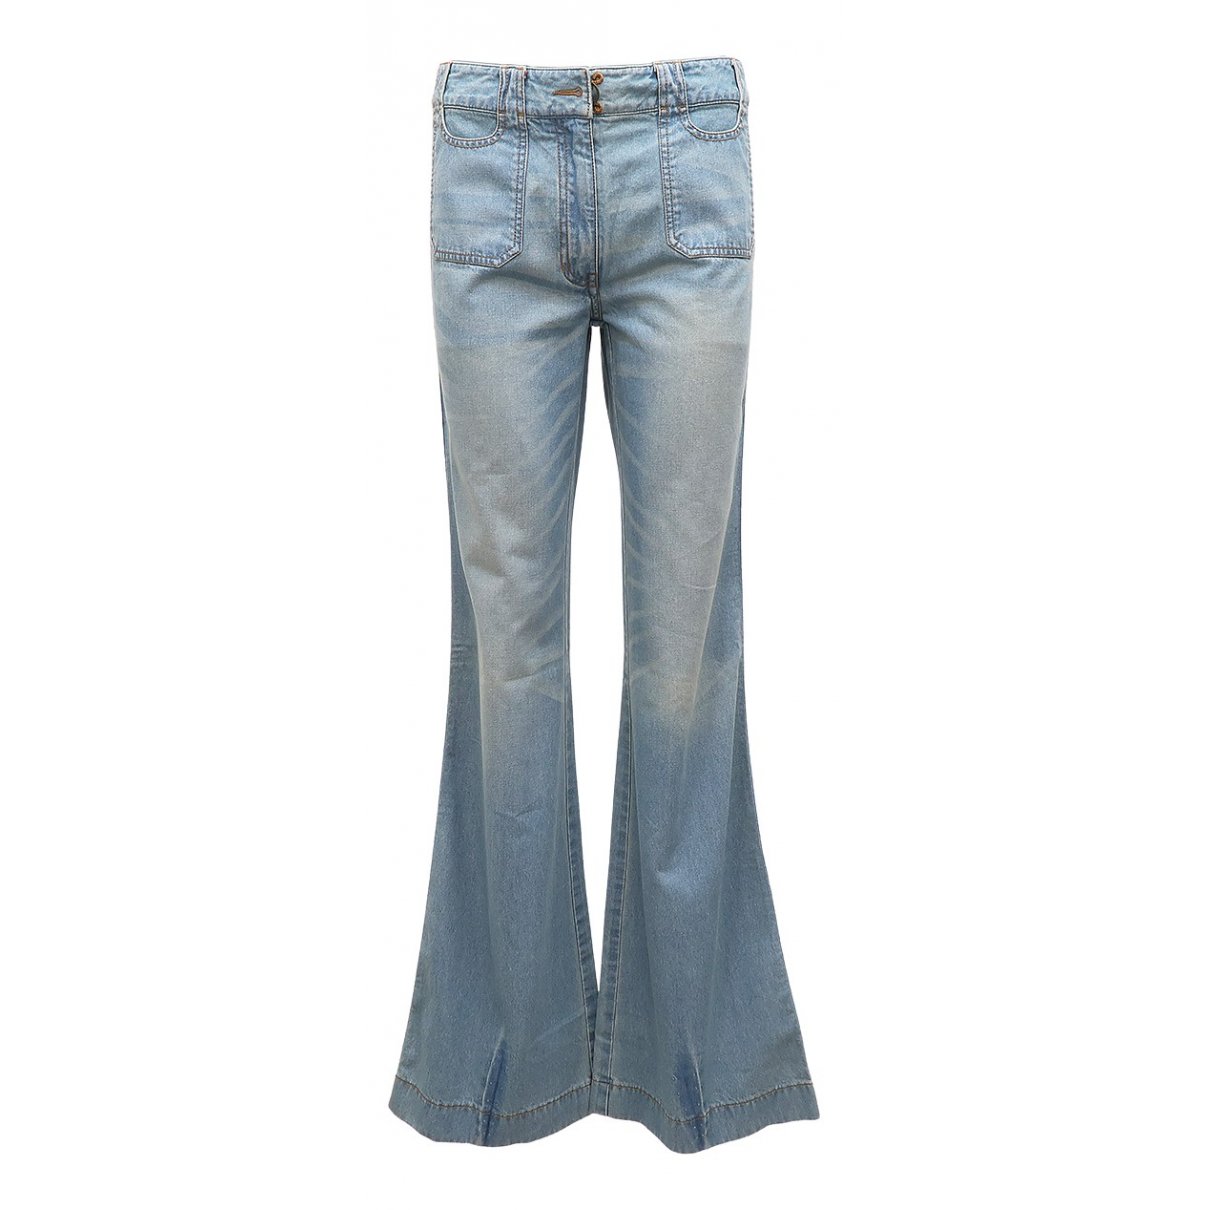 3.1 Phillip Lim \N Blue Cotton Jeans for Women 38 FR